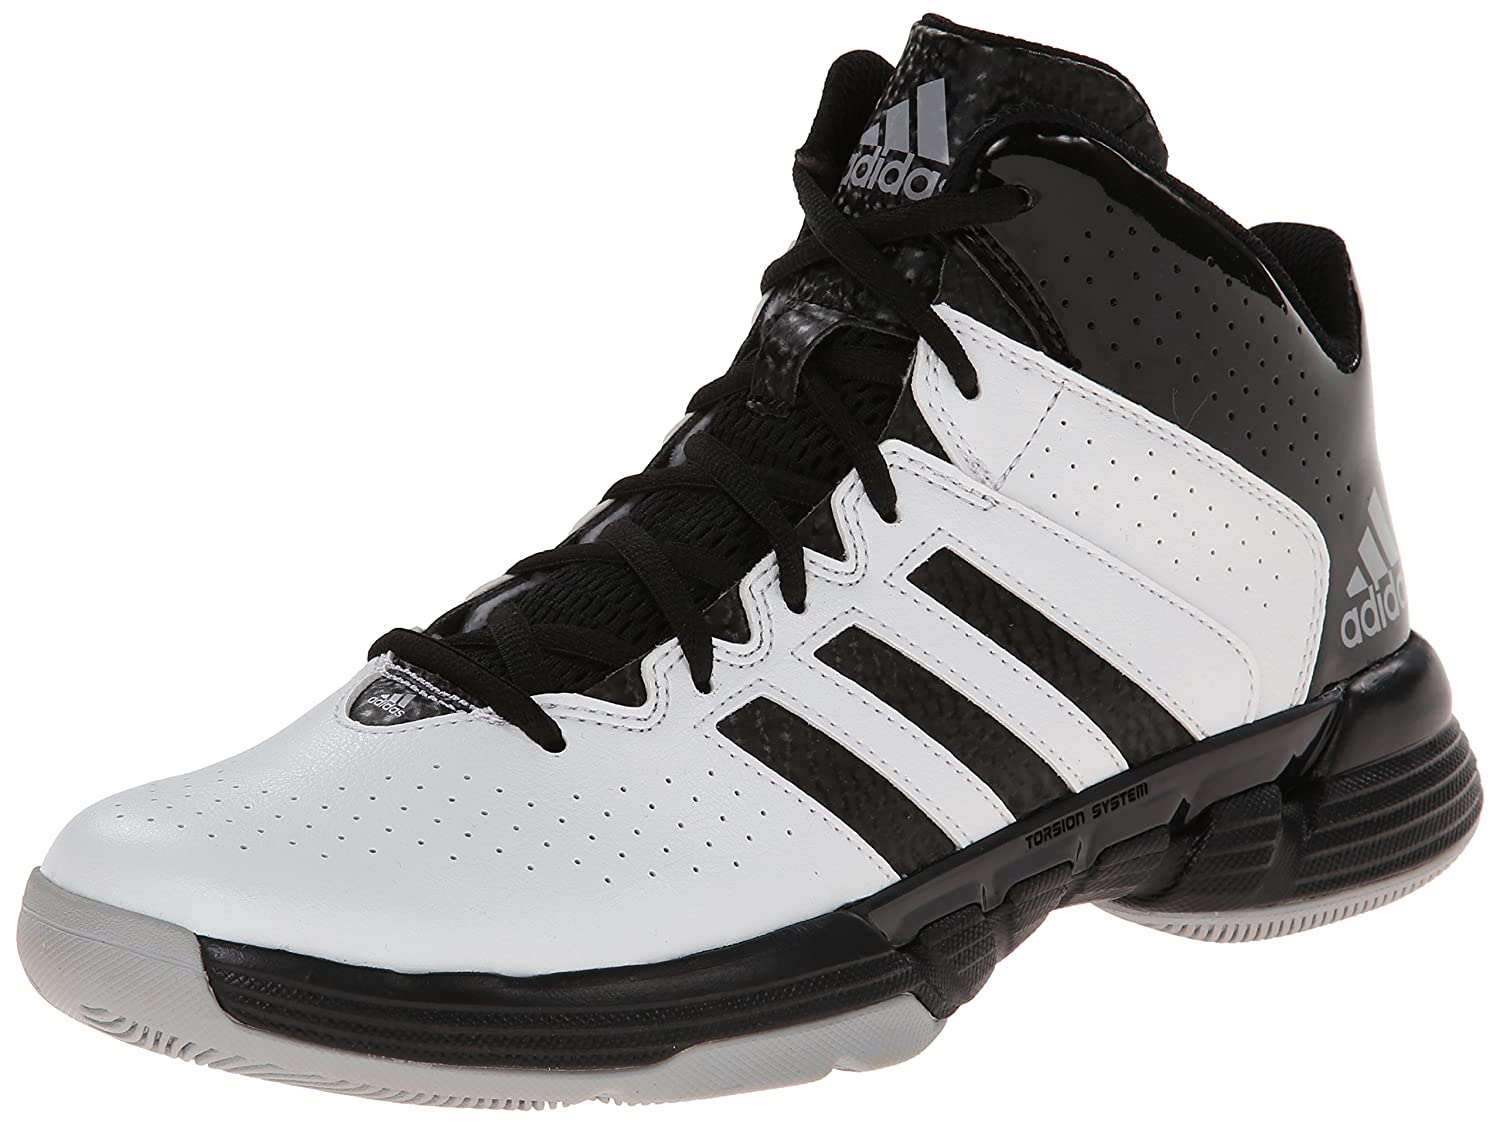 sports shoes eefe3 ff482 wholesale adidas superstar 2 j m25281 c3a4c f824d  greece adidas torsion  system basketball shoes price 5a9aa 06dba